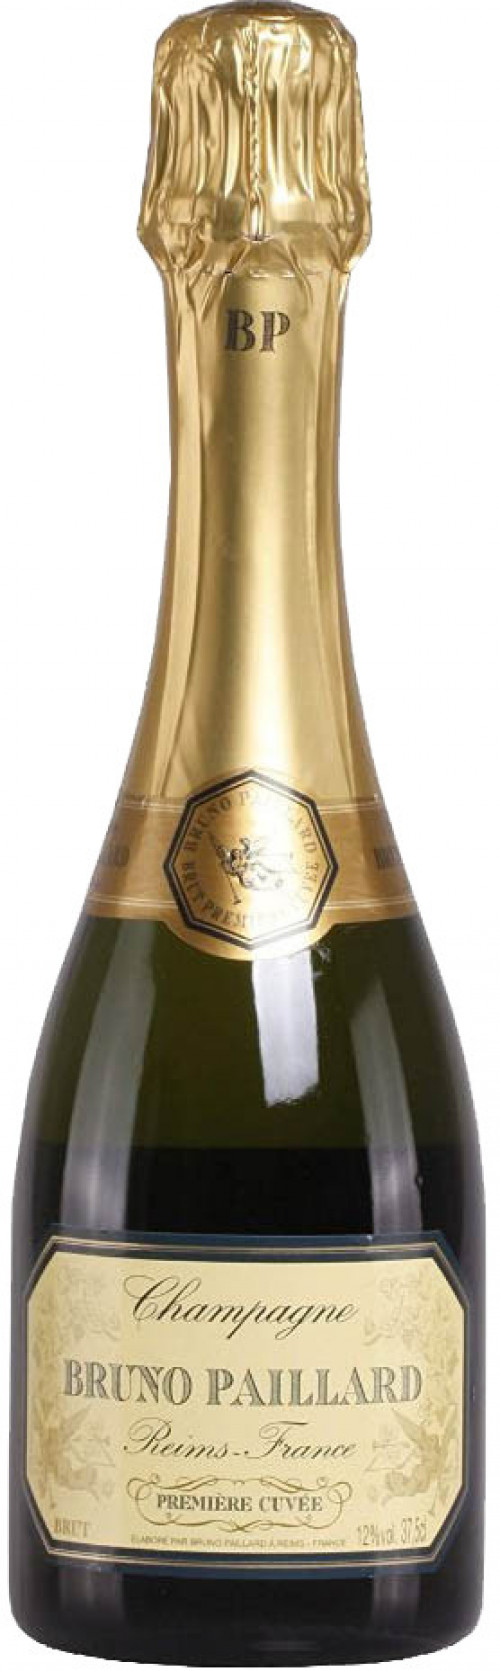 Bruno Paillard Brut 375ml NV